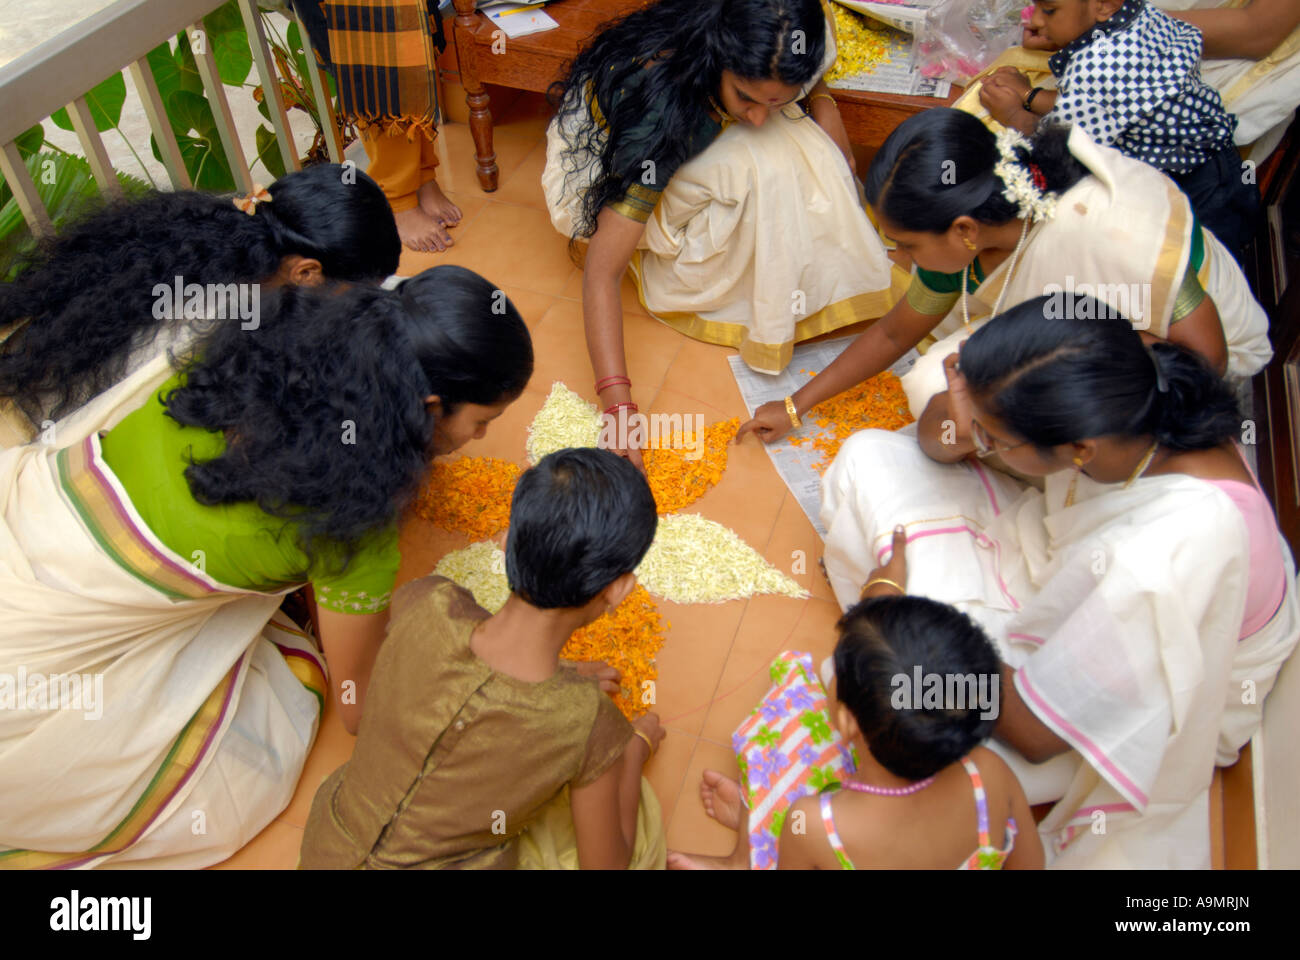 ONAM CELEBRATIONS IN KERALA - Stock Image